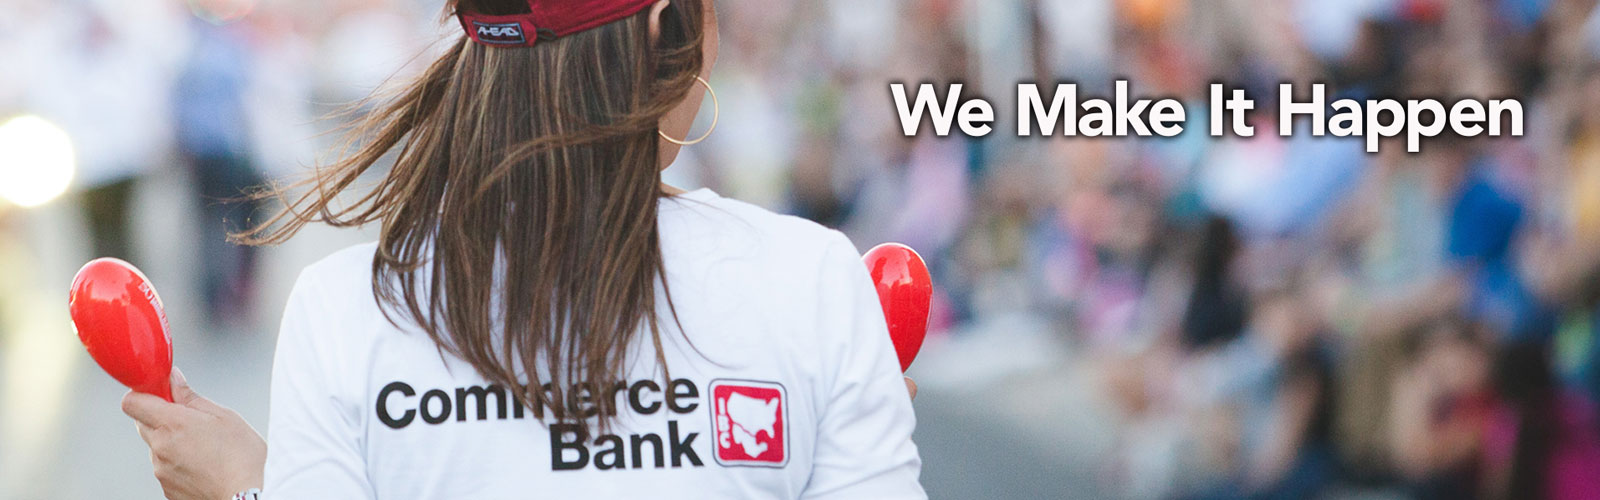 commerce-bank-we-make-it-happen